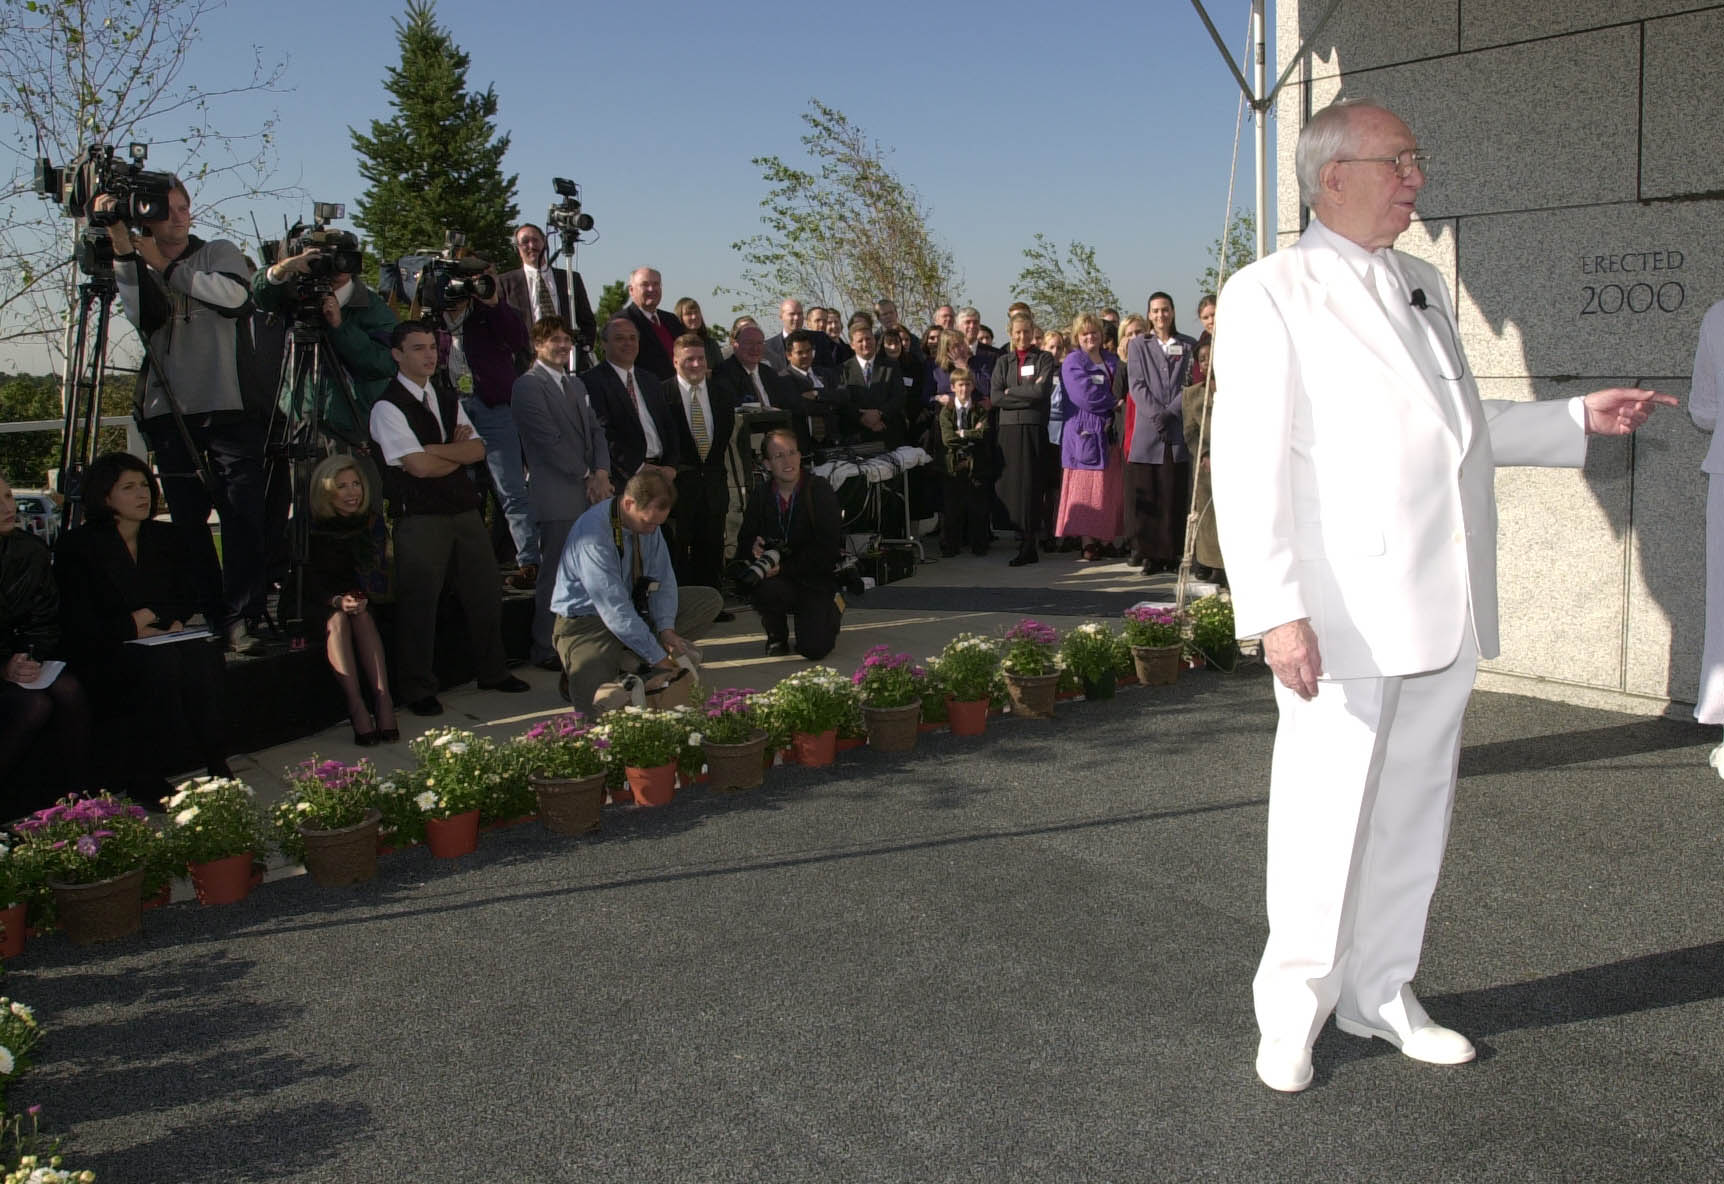 President Gordon B. Hinckley at the cornerstone with media at the Boston Massachusetts Temple dedication.